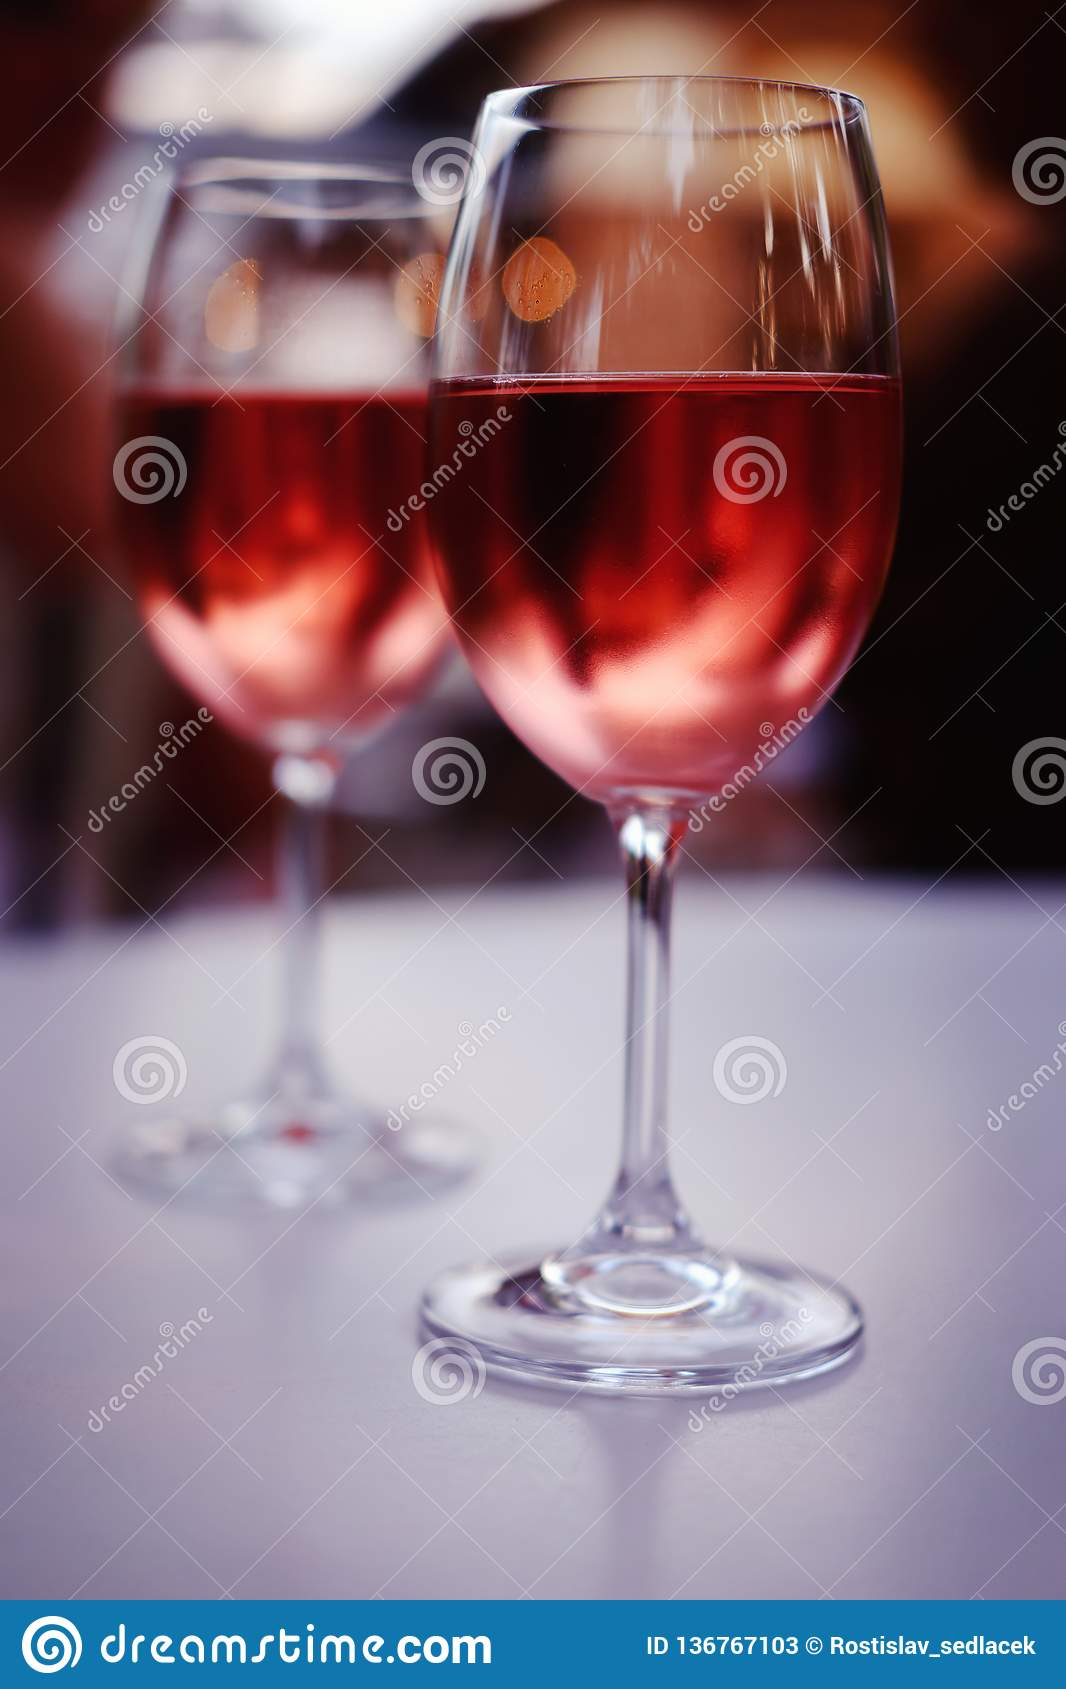 Two glasses of pink wine on a table